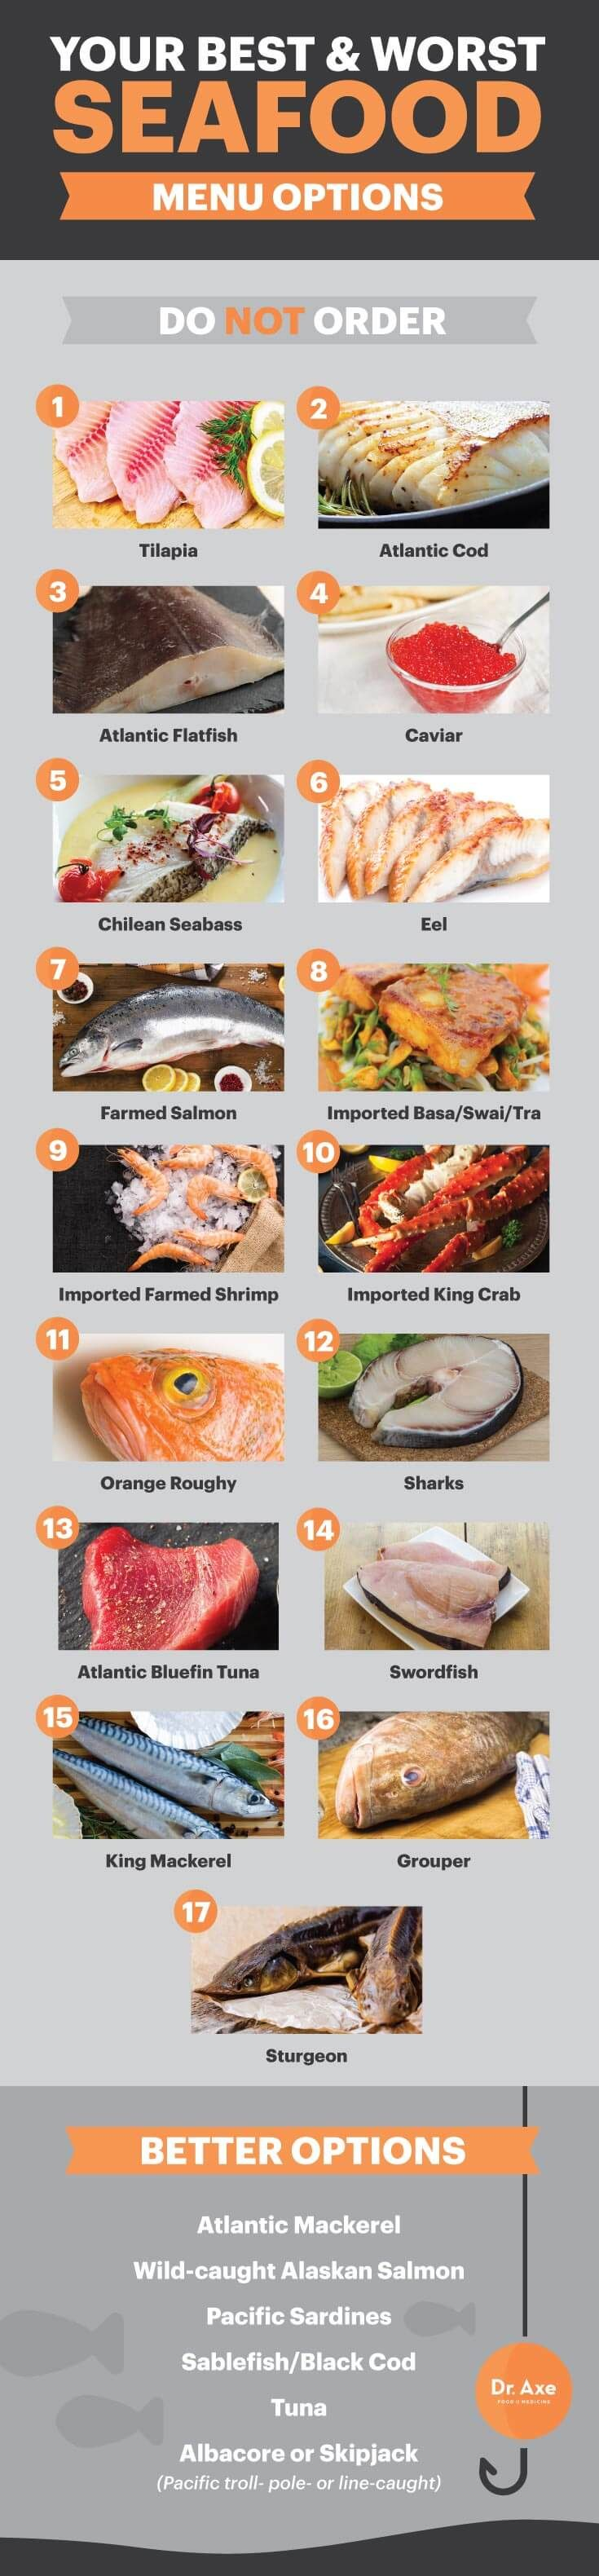 Fish you should never eat - Dr. Axe http://www.draxe.com #health #holistic #natural